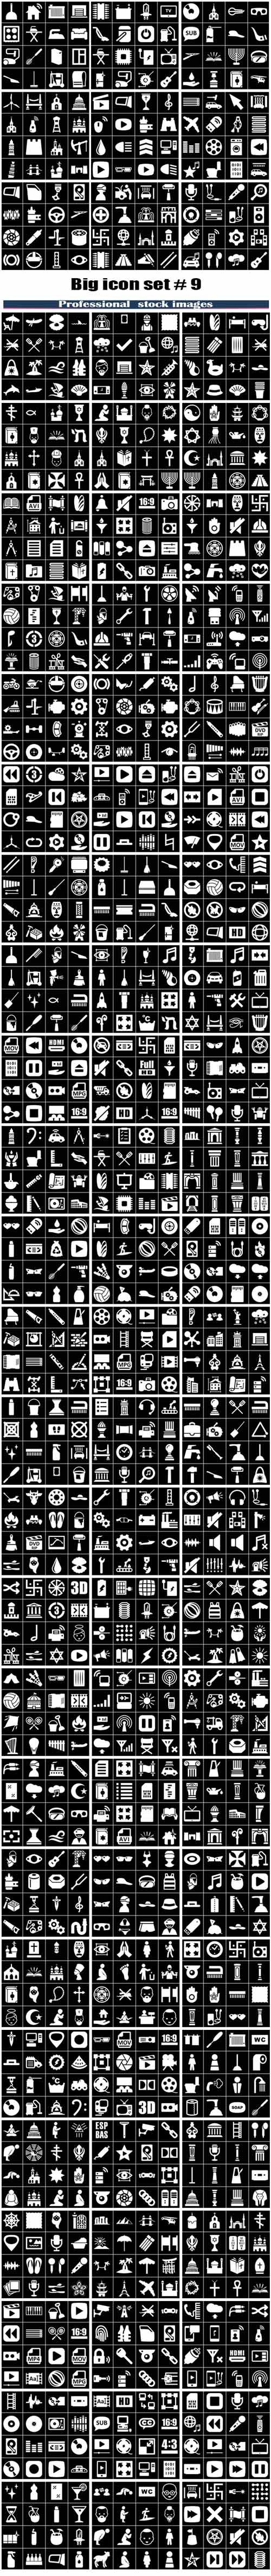 Big icon set # 9